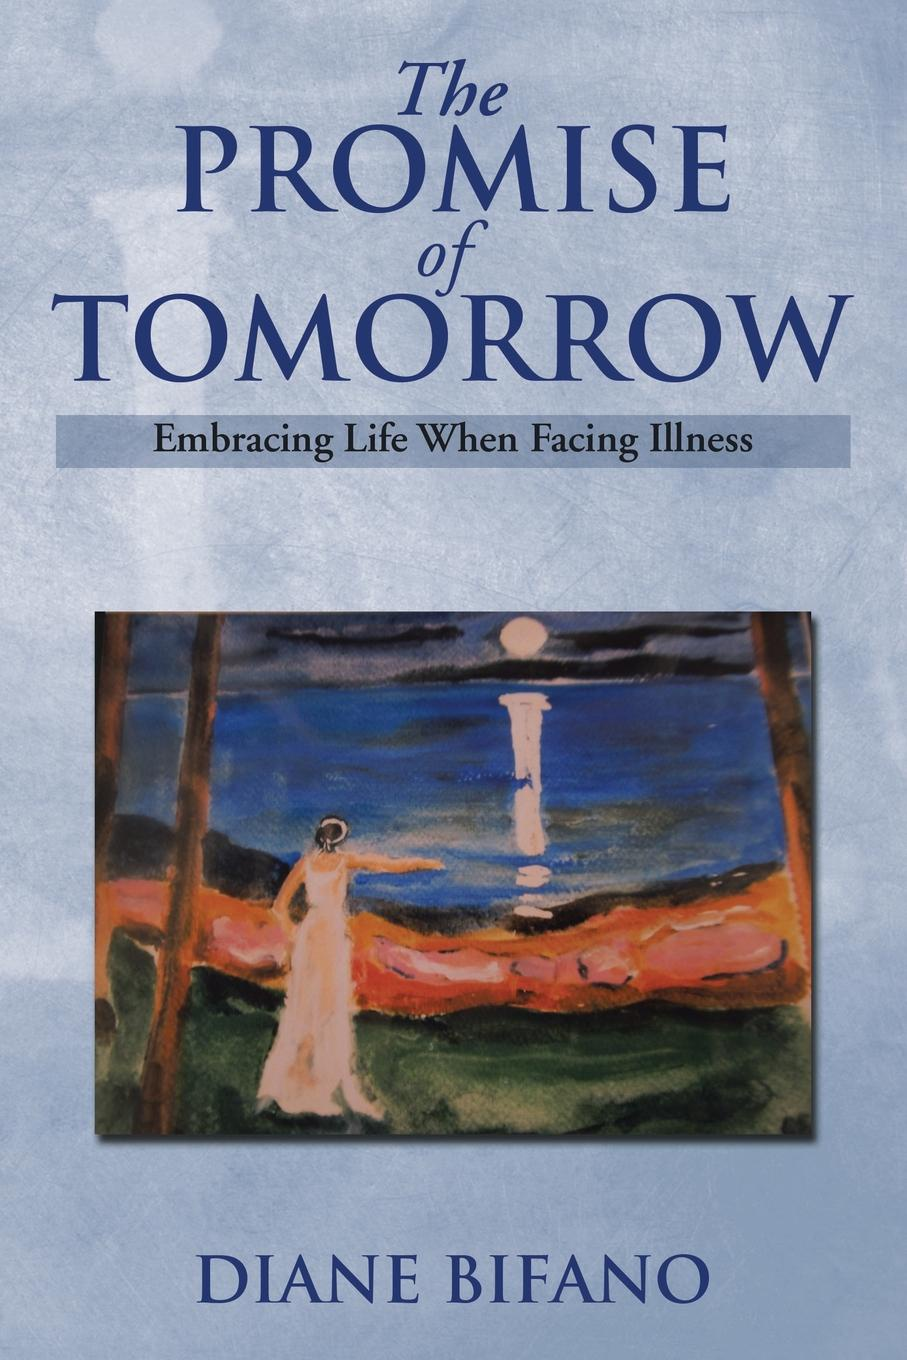 Diane Bifano The Promise of Tomorrow. Embracing Life When Facing Illness